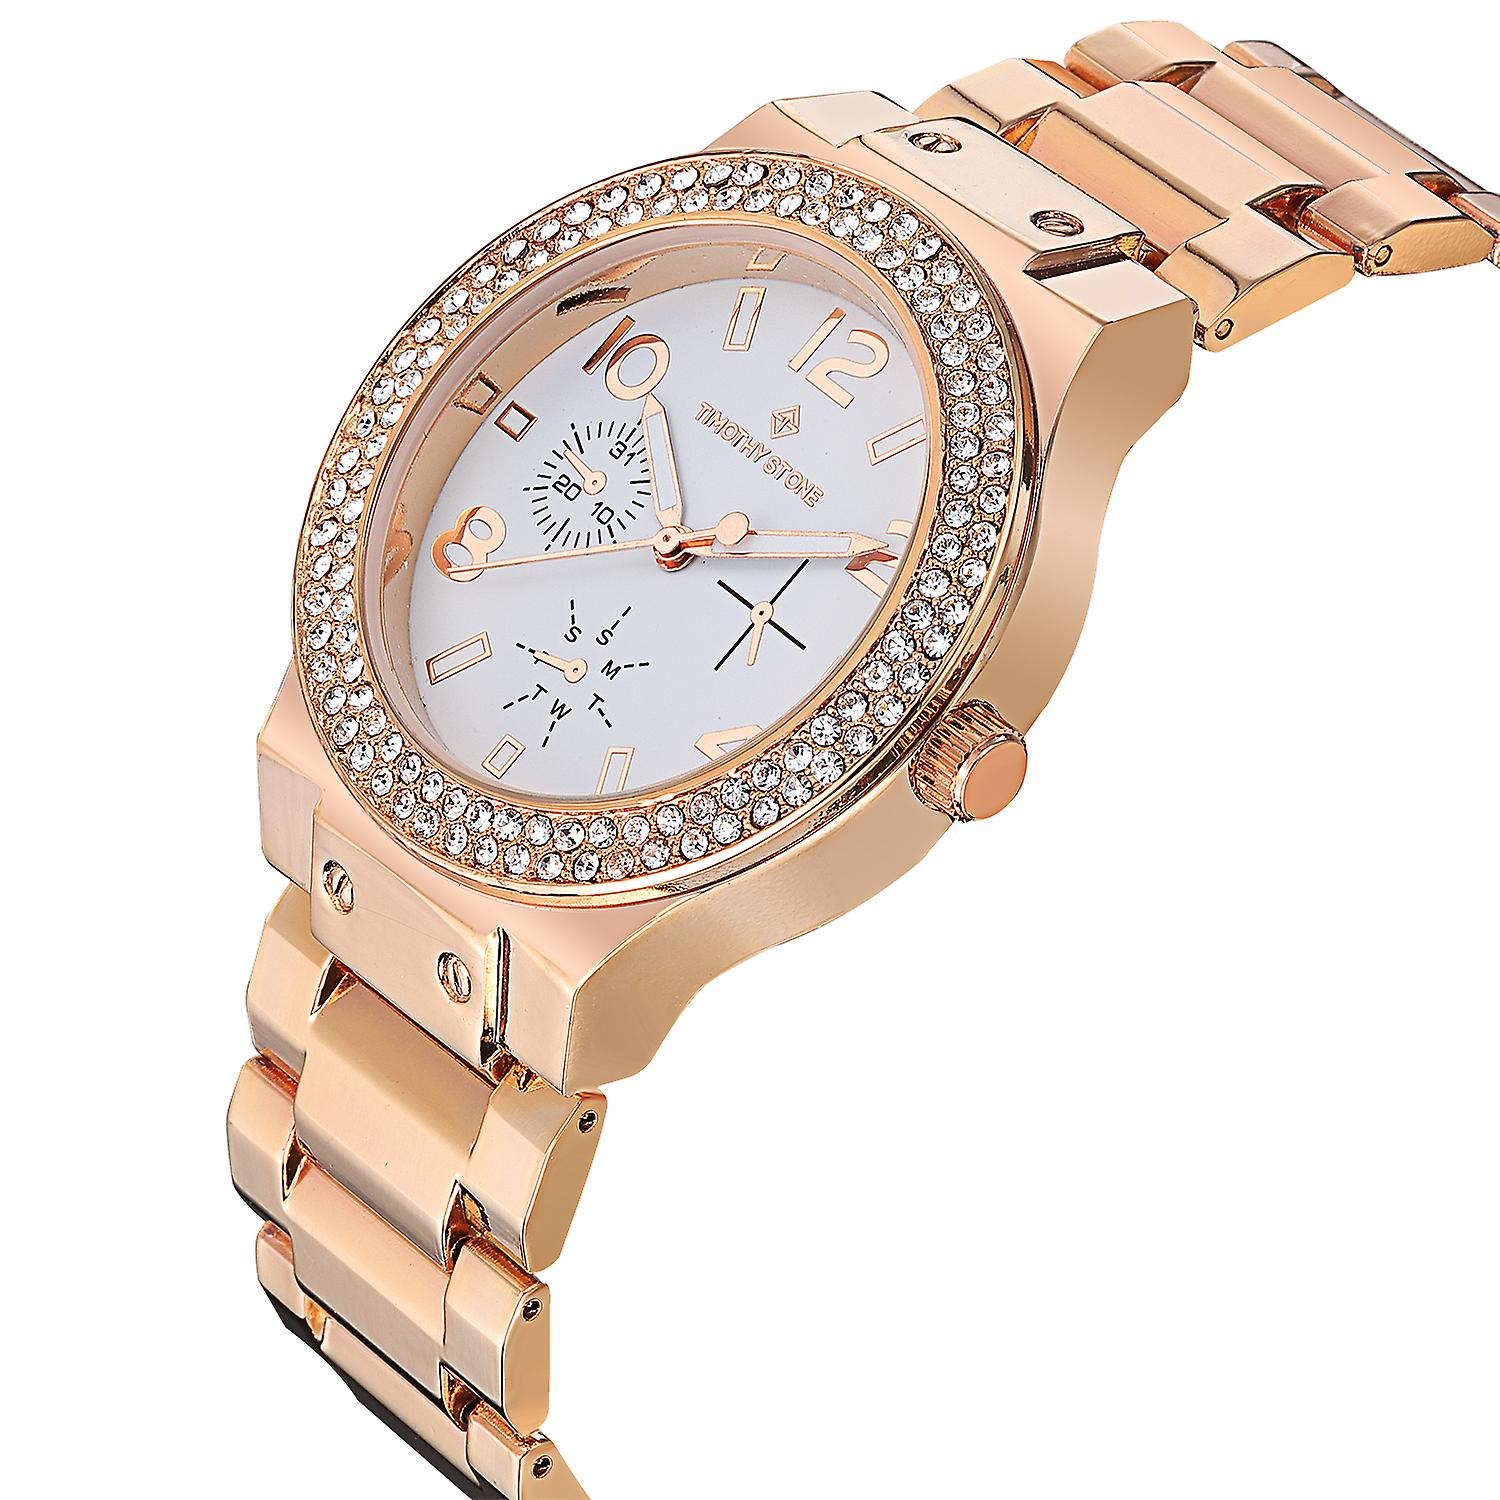 Timothy Stone Women's FA�ON-STAINLESS Rose Gold-Tone Watch